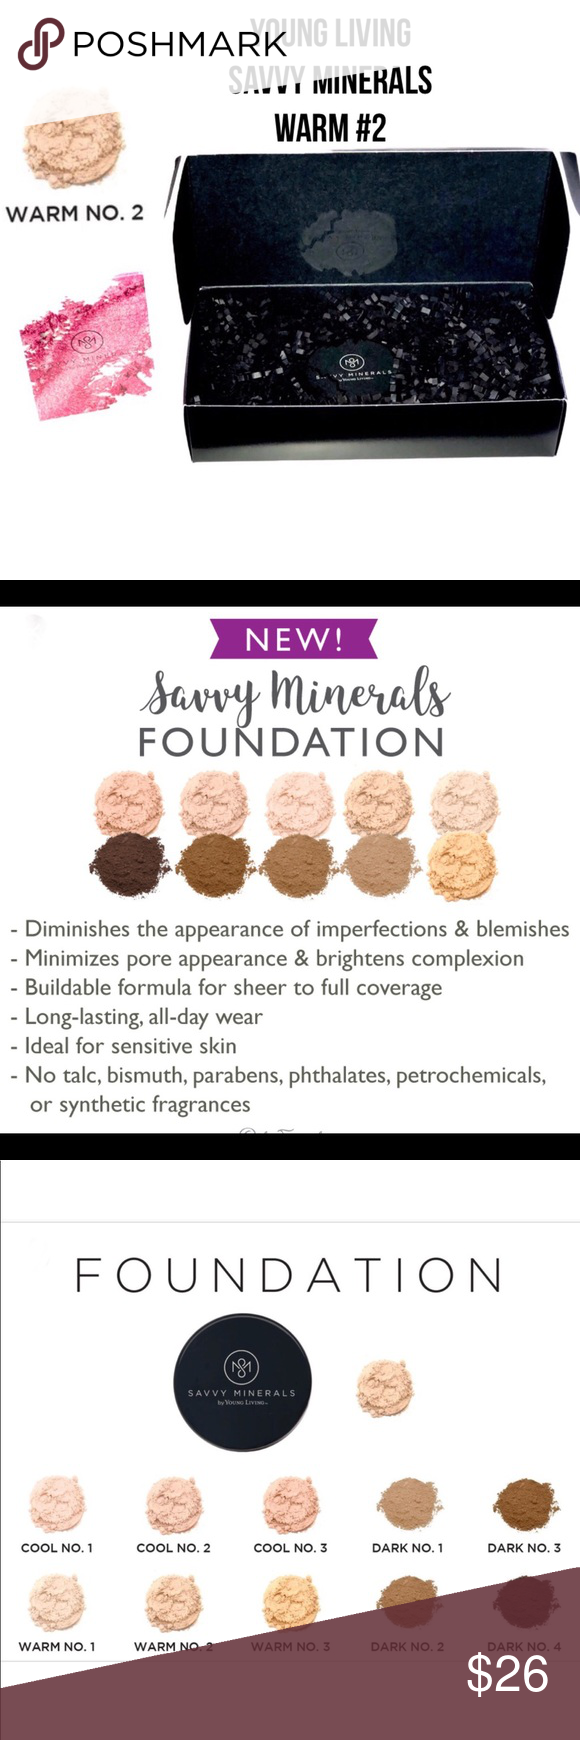 NIB Young Living Savvy Minerals Warm 2 Foundation This